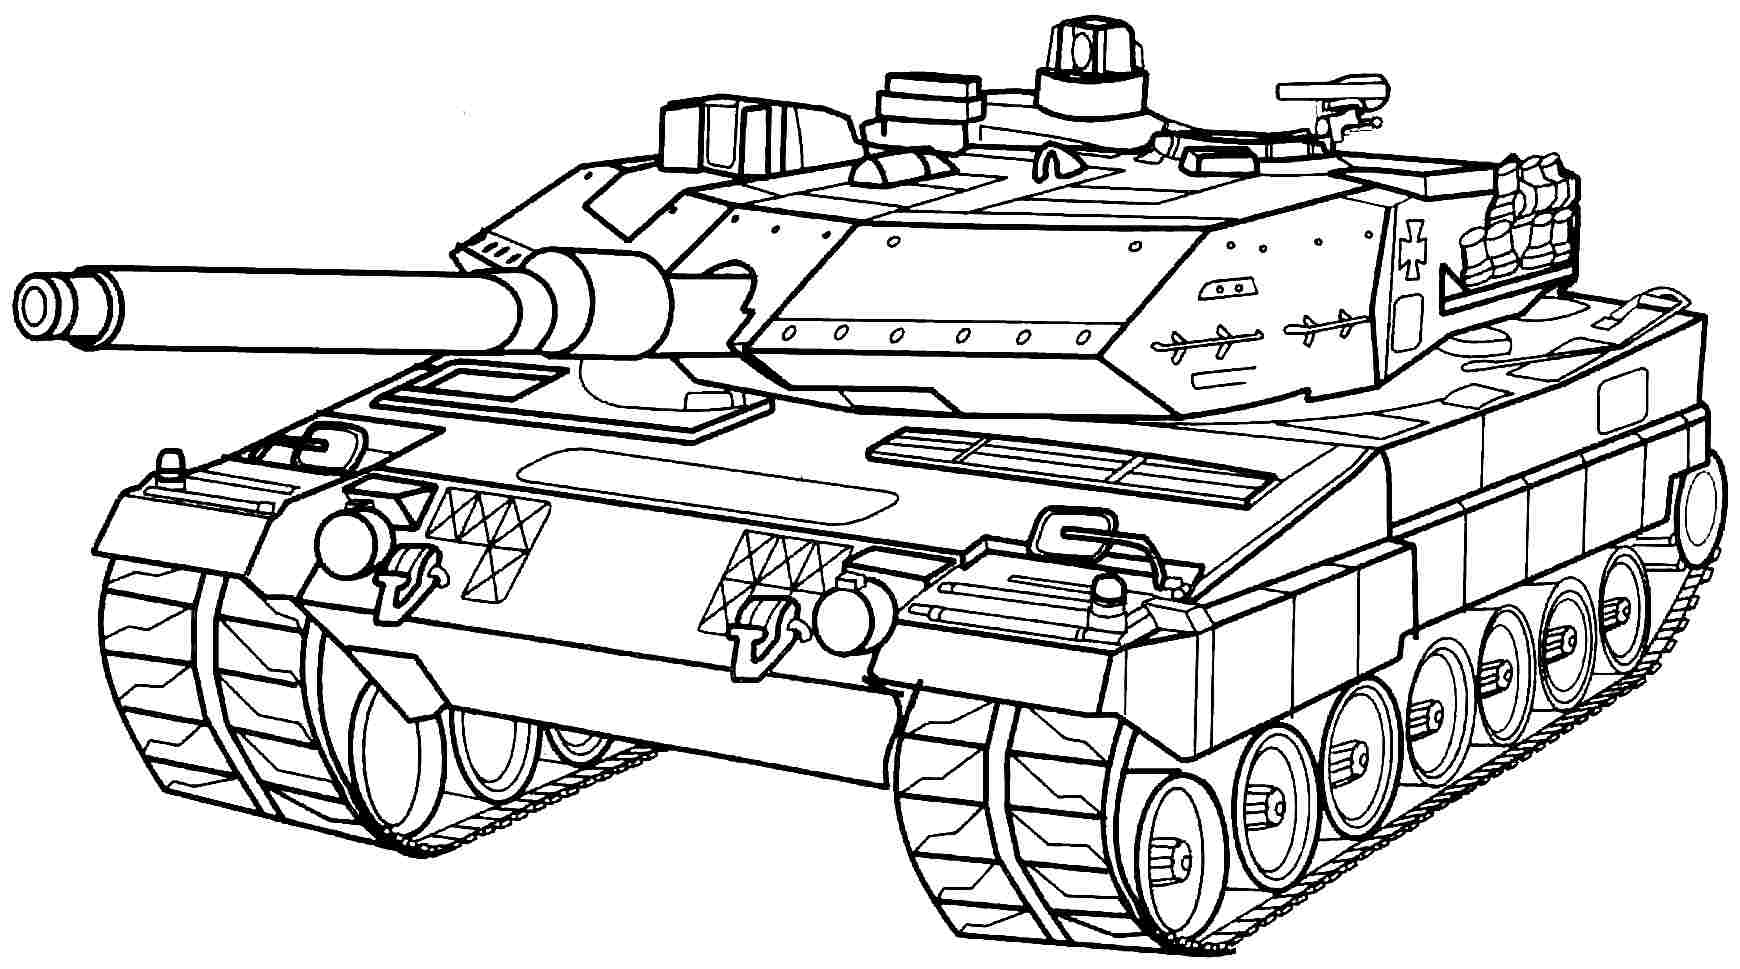 Army Tank Coloring Pages - Army Tank Coloring Pages Coloring Pages